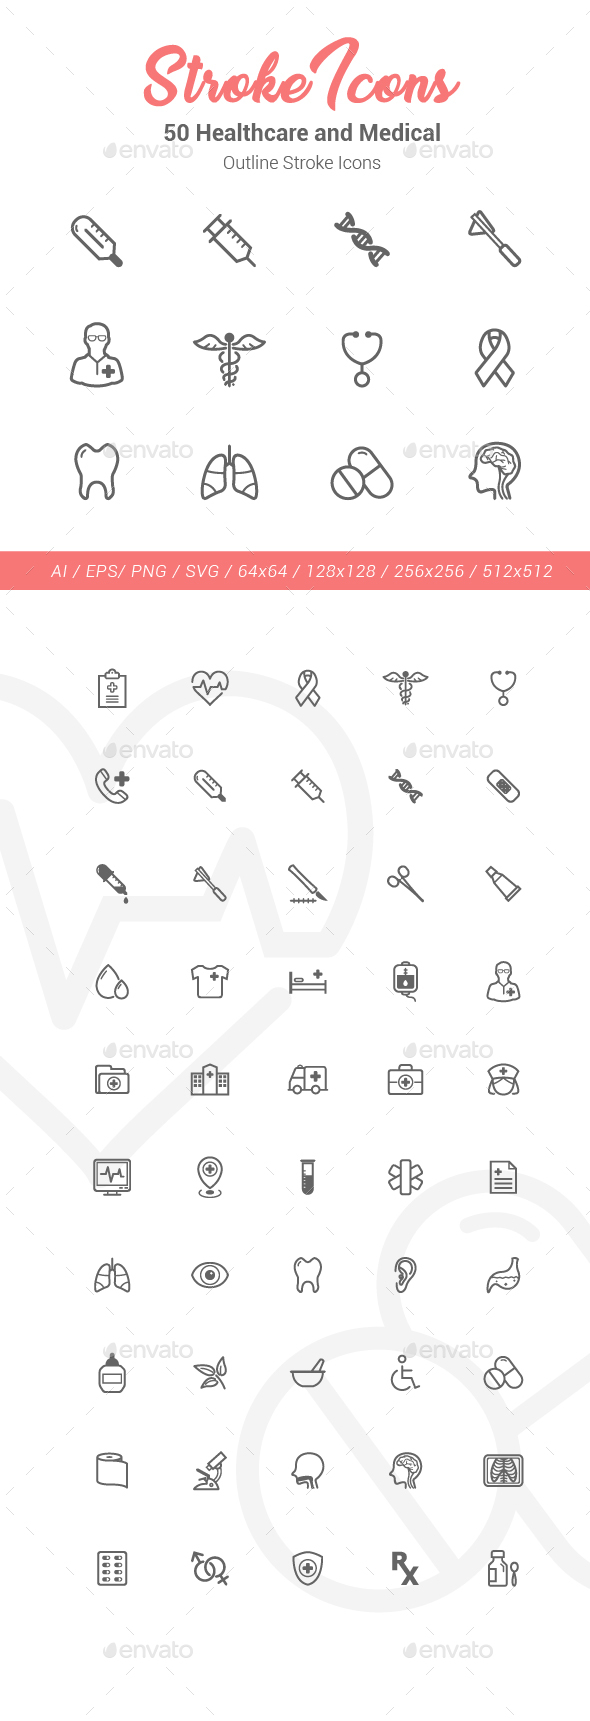 50 Healthcare Outline Stroke Icons - Objects Icons